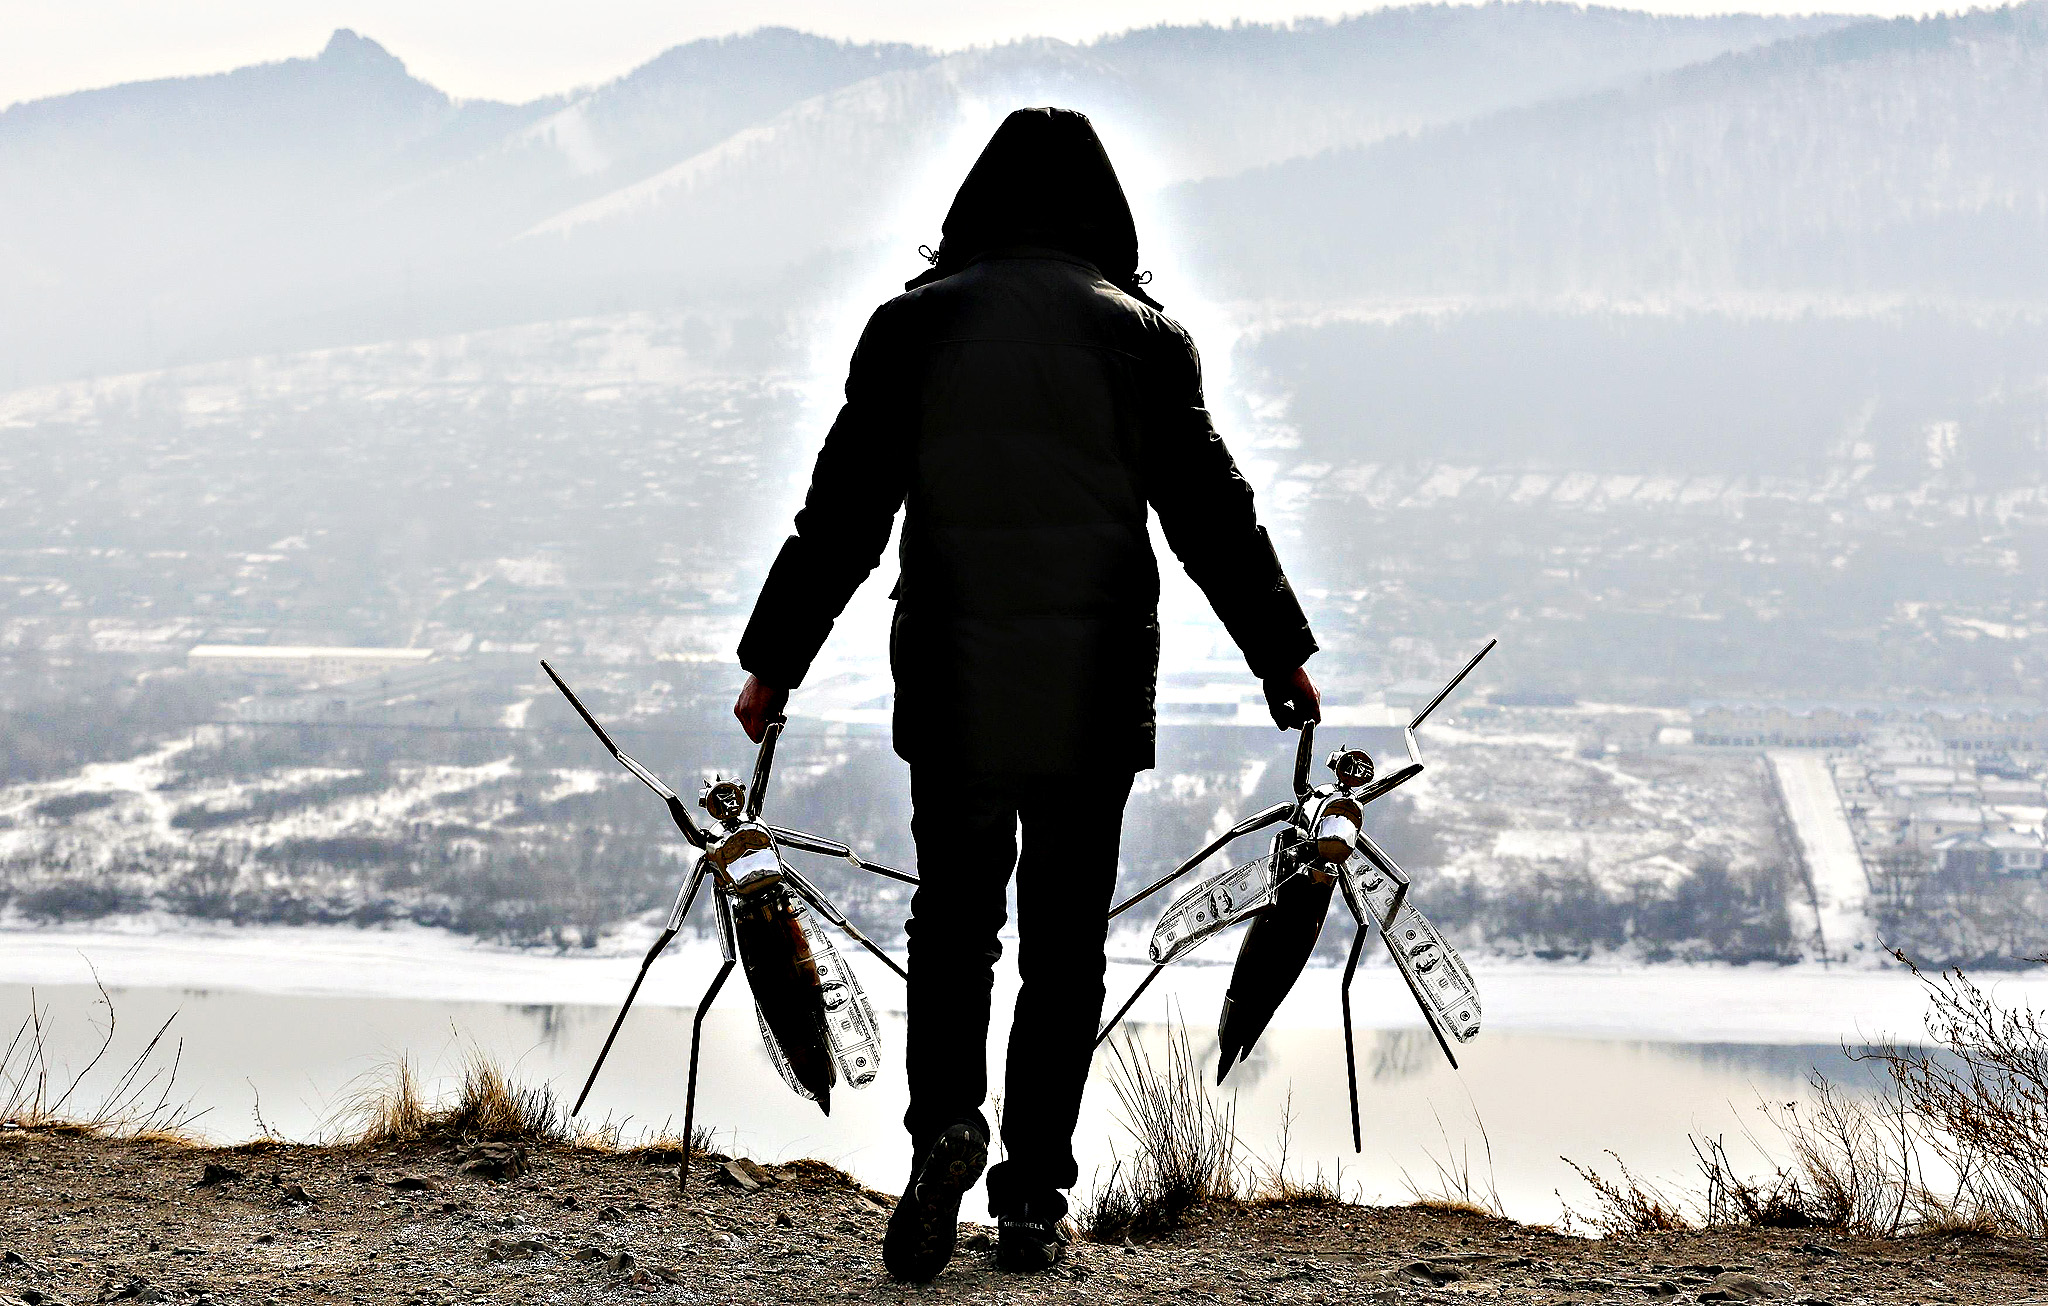 "Russian artist Vasily Slonov carries props he called ""Oil Mosquitoes"", which are made of stainless steel and glass filled with natural oil, for a demonstration of an installation on a bank of the Yenisei River in the Siberian city of Krasnoyarsk February 25, 2015. Slonov showed his installation called ""Mosquitoes exhausting the oil, the blood of the Earth"" ahead of the opening the Krasnoyarsk Economic Forum on February 26."